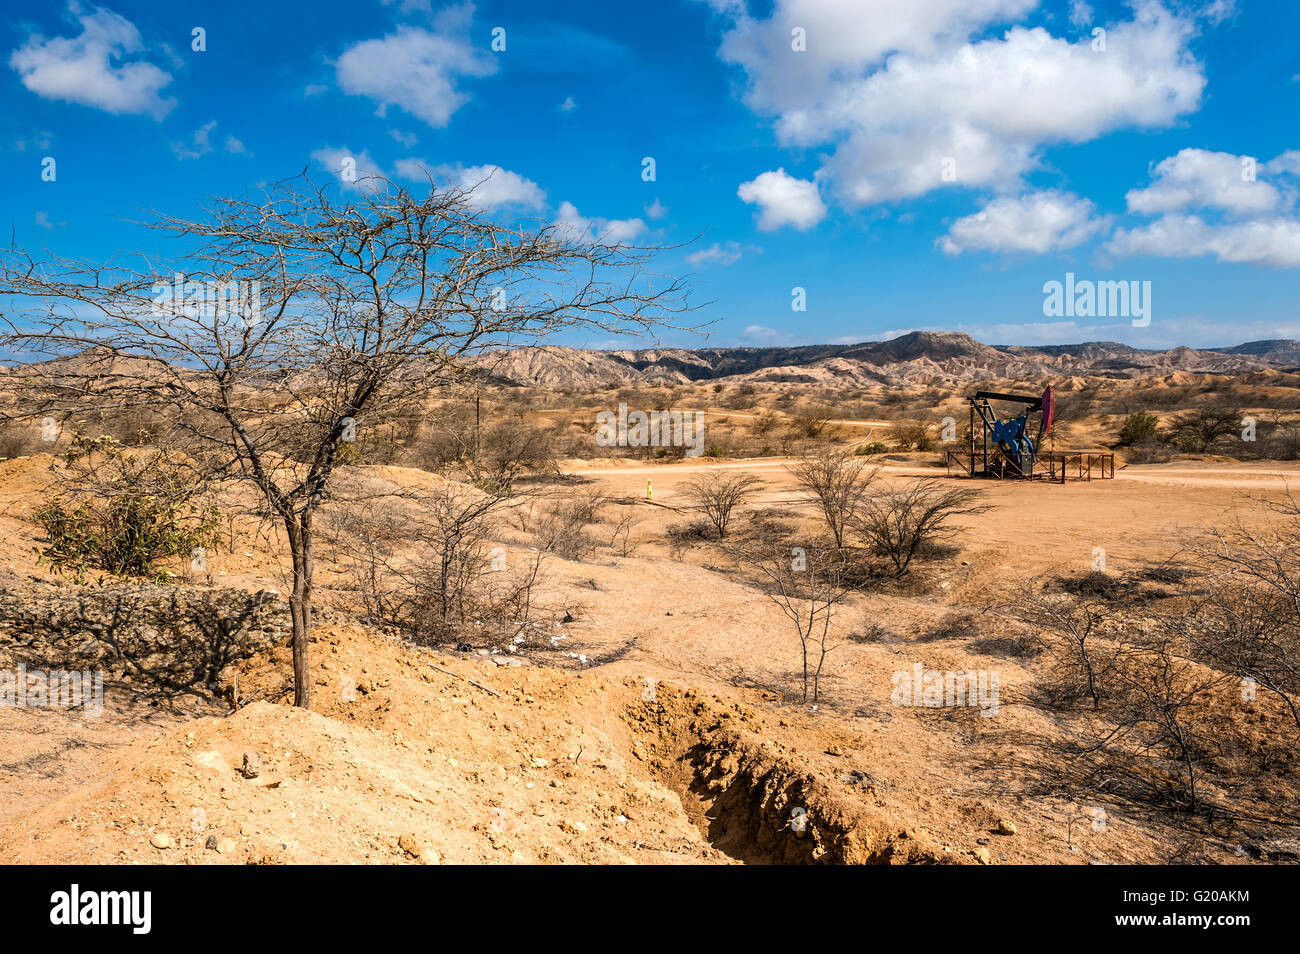 Oil Pump in the Desert, Mancora, Peru - Stock Image